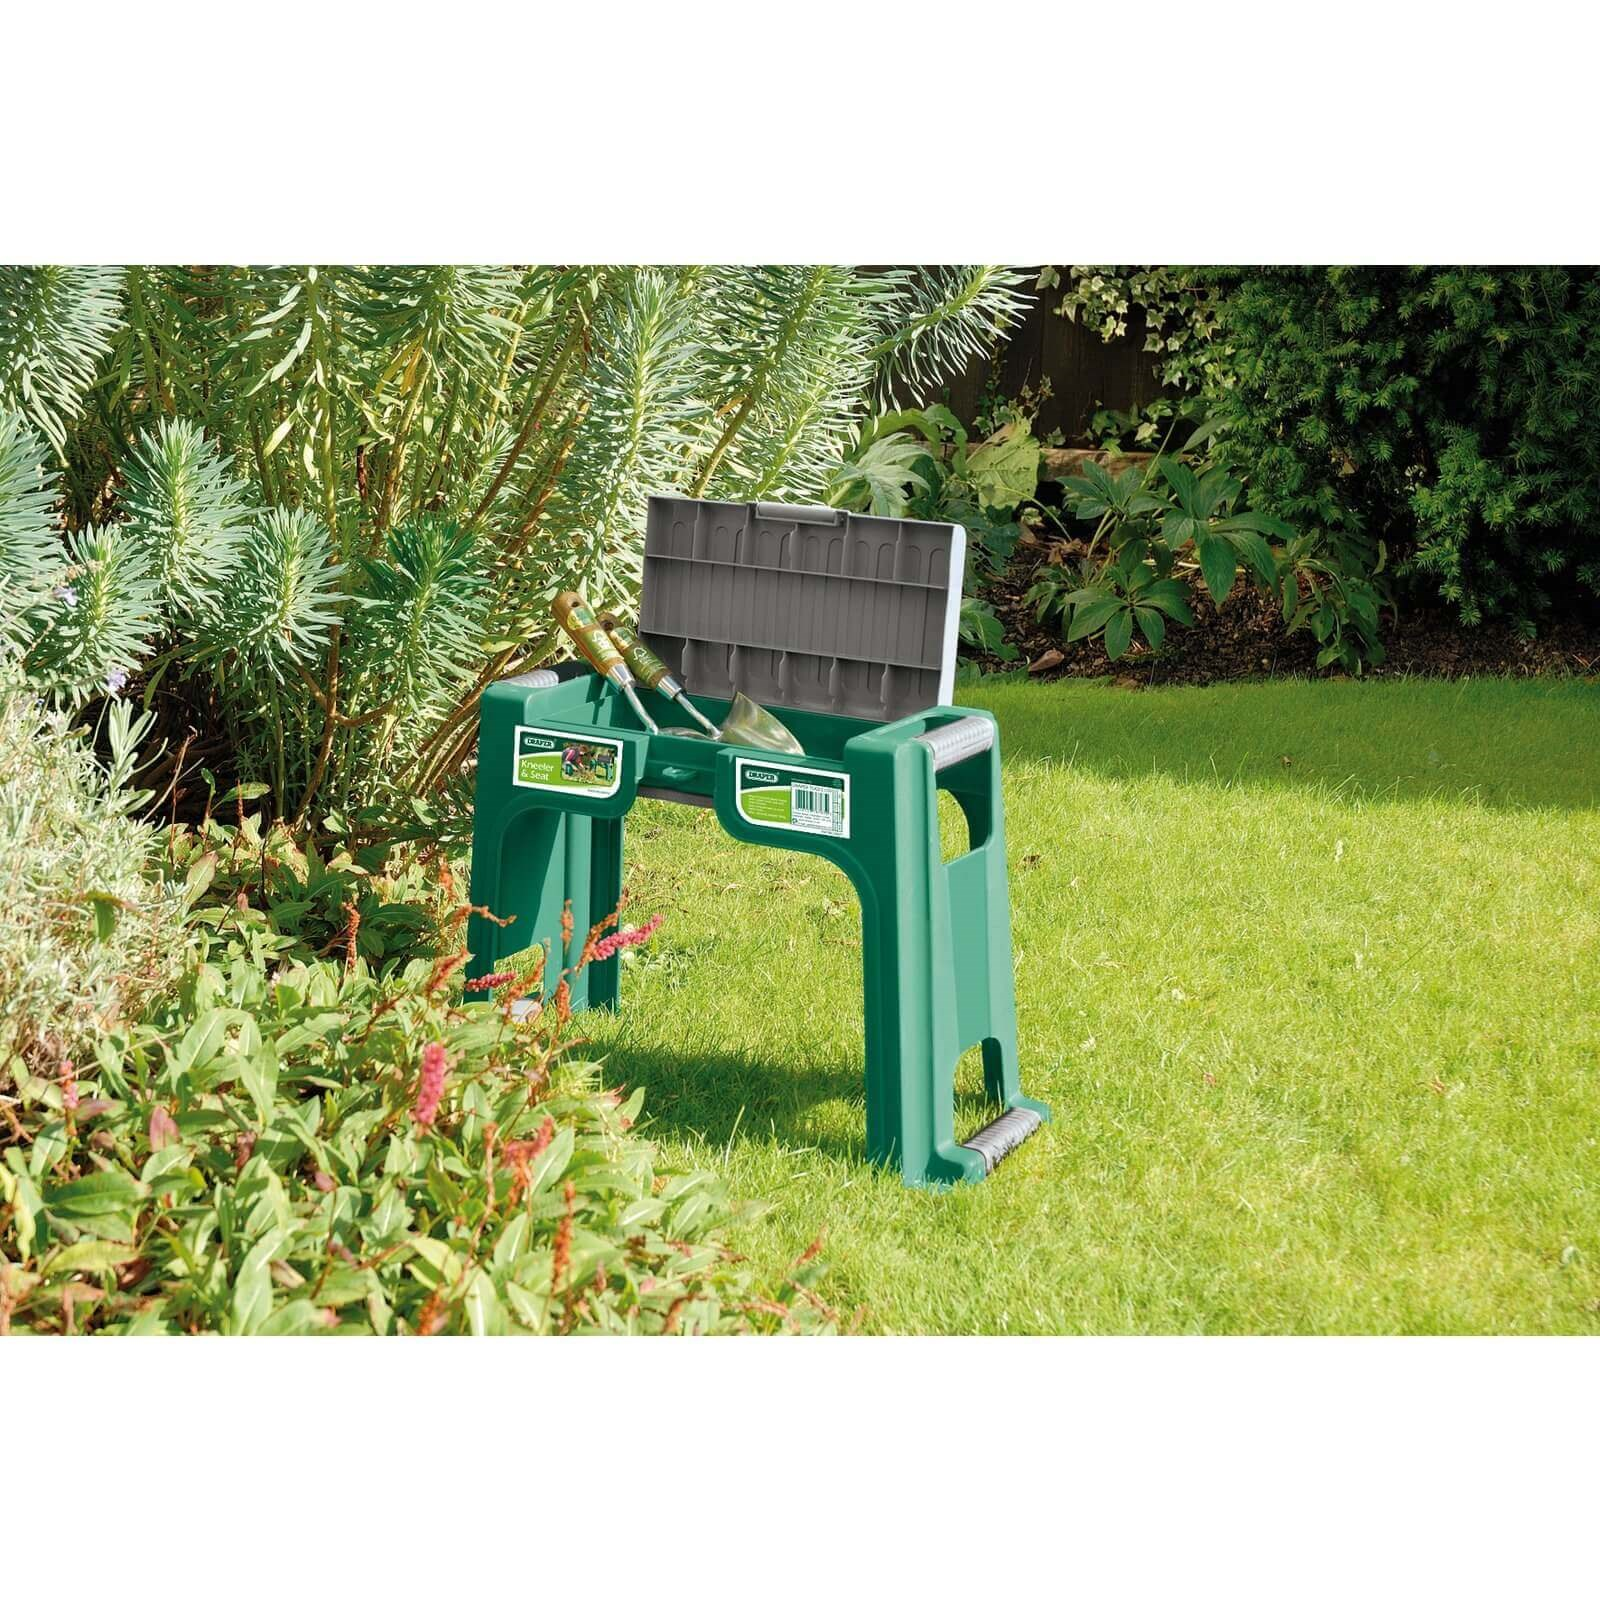 Terrific Draper Garden Kneeler And Seat Garden Kneelers Forskolin Free Trial Chair Design Images Forskolin Free Trialorg